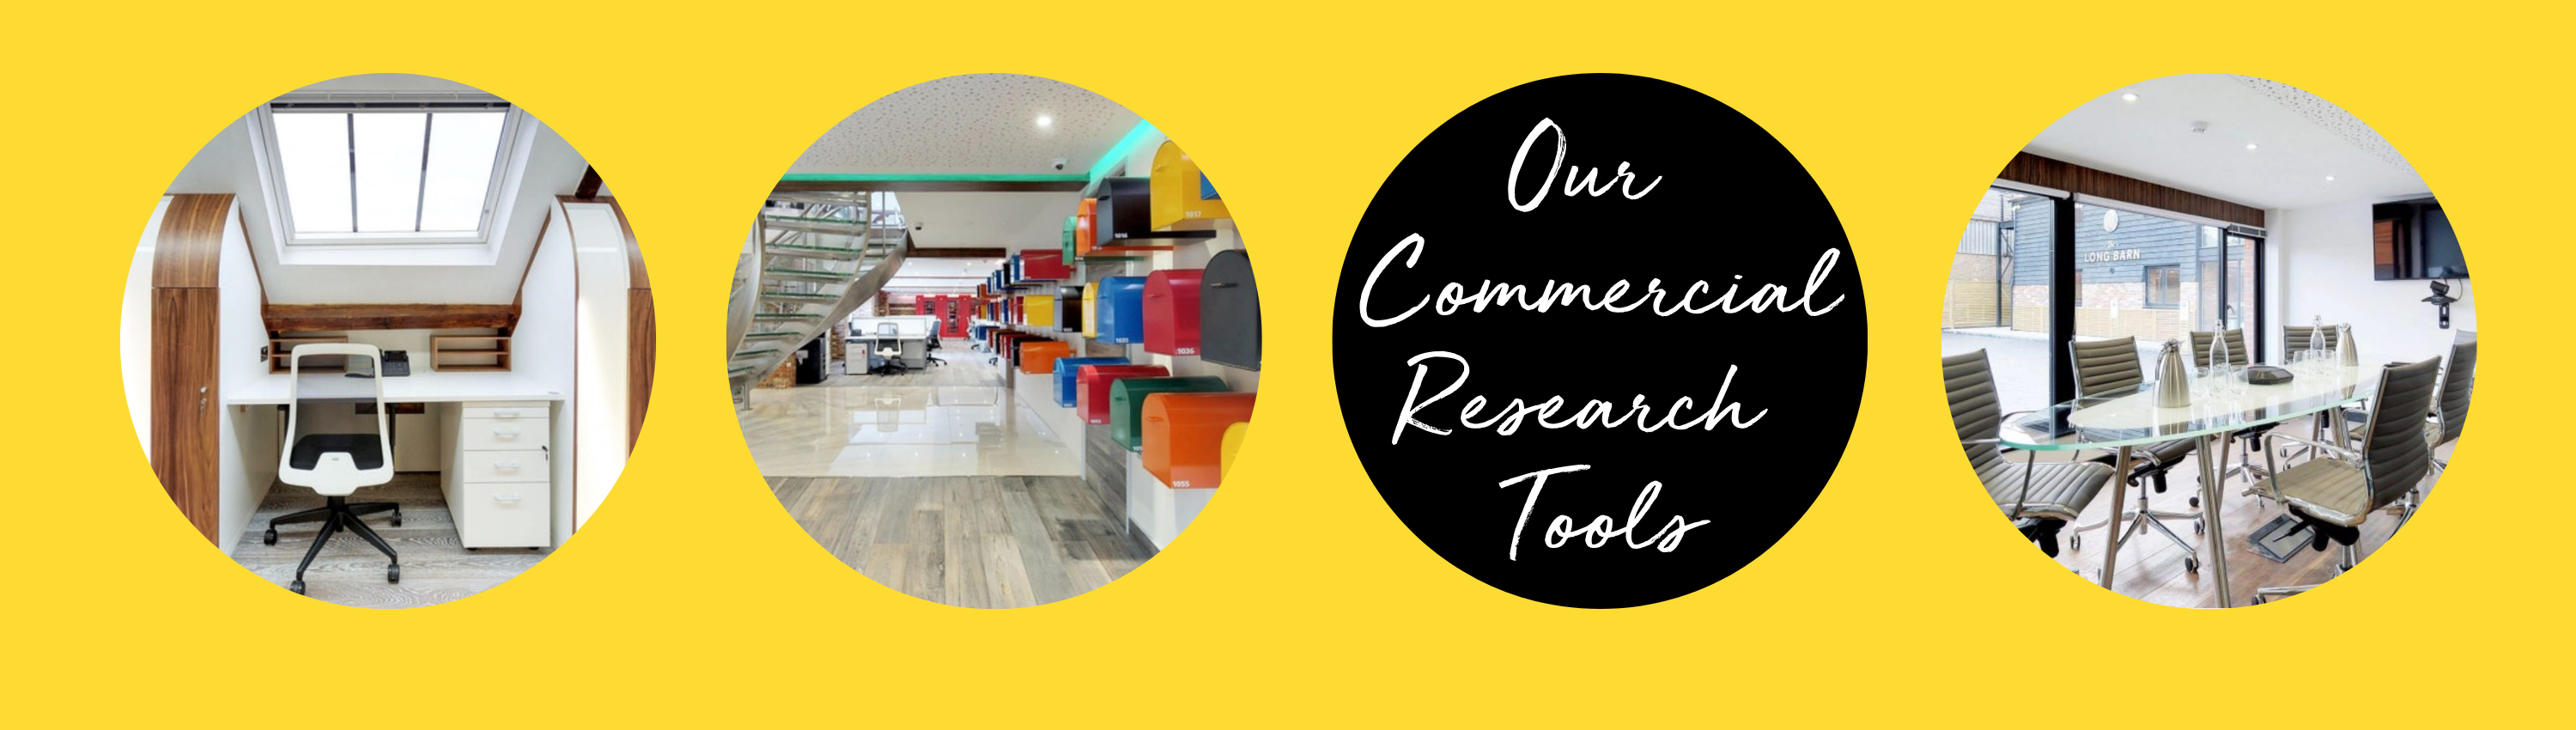 Our Commercial Research Tools